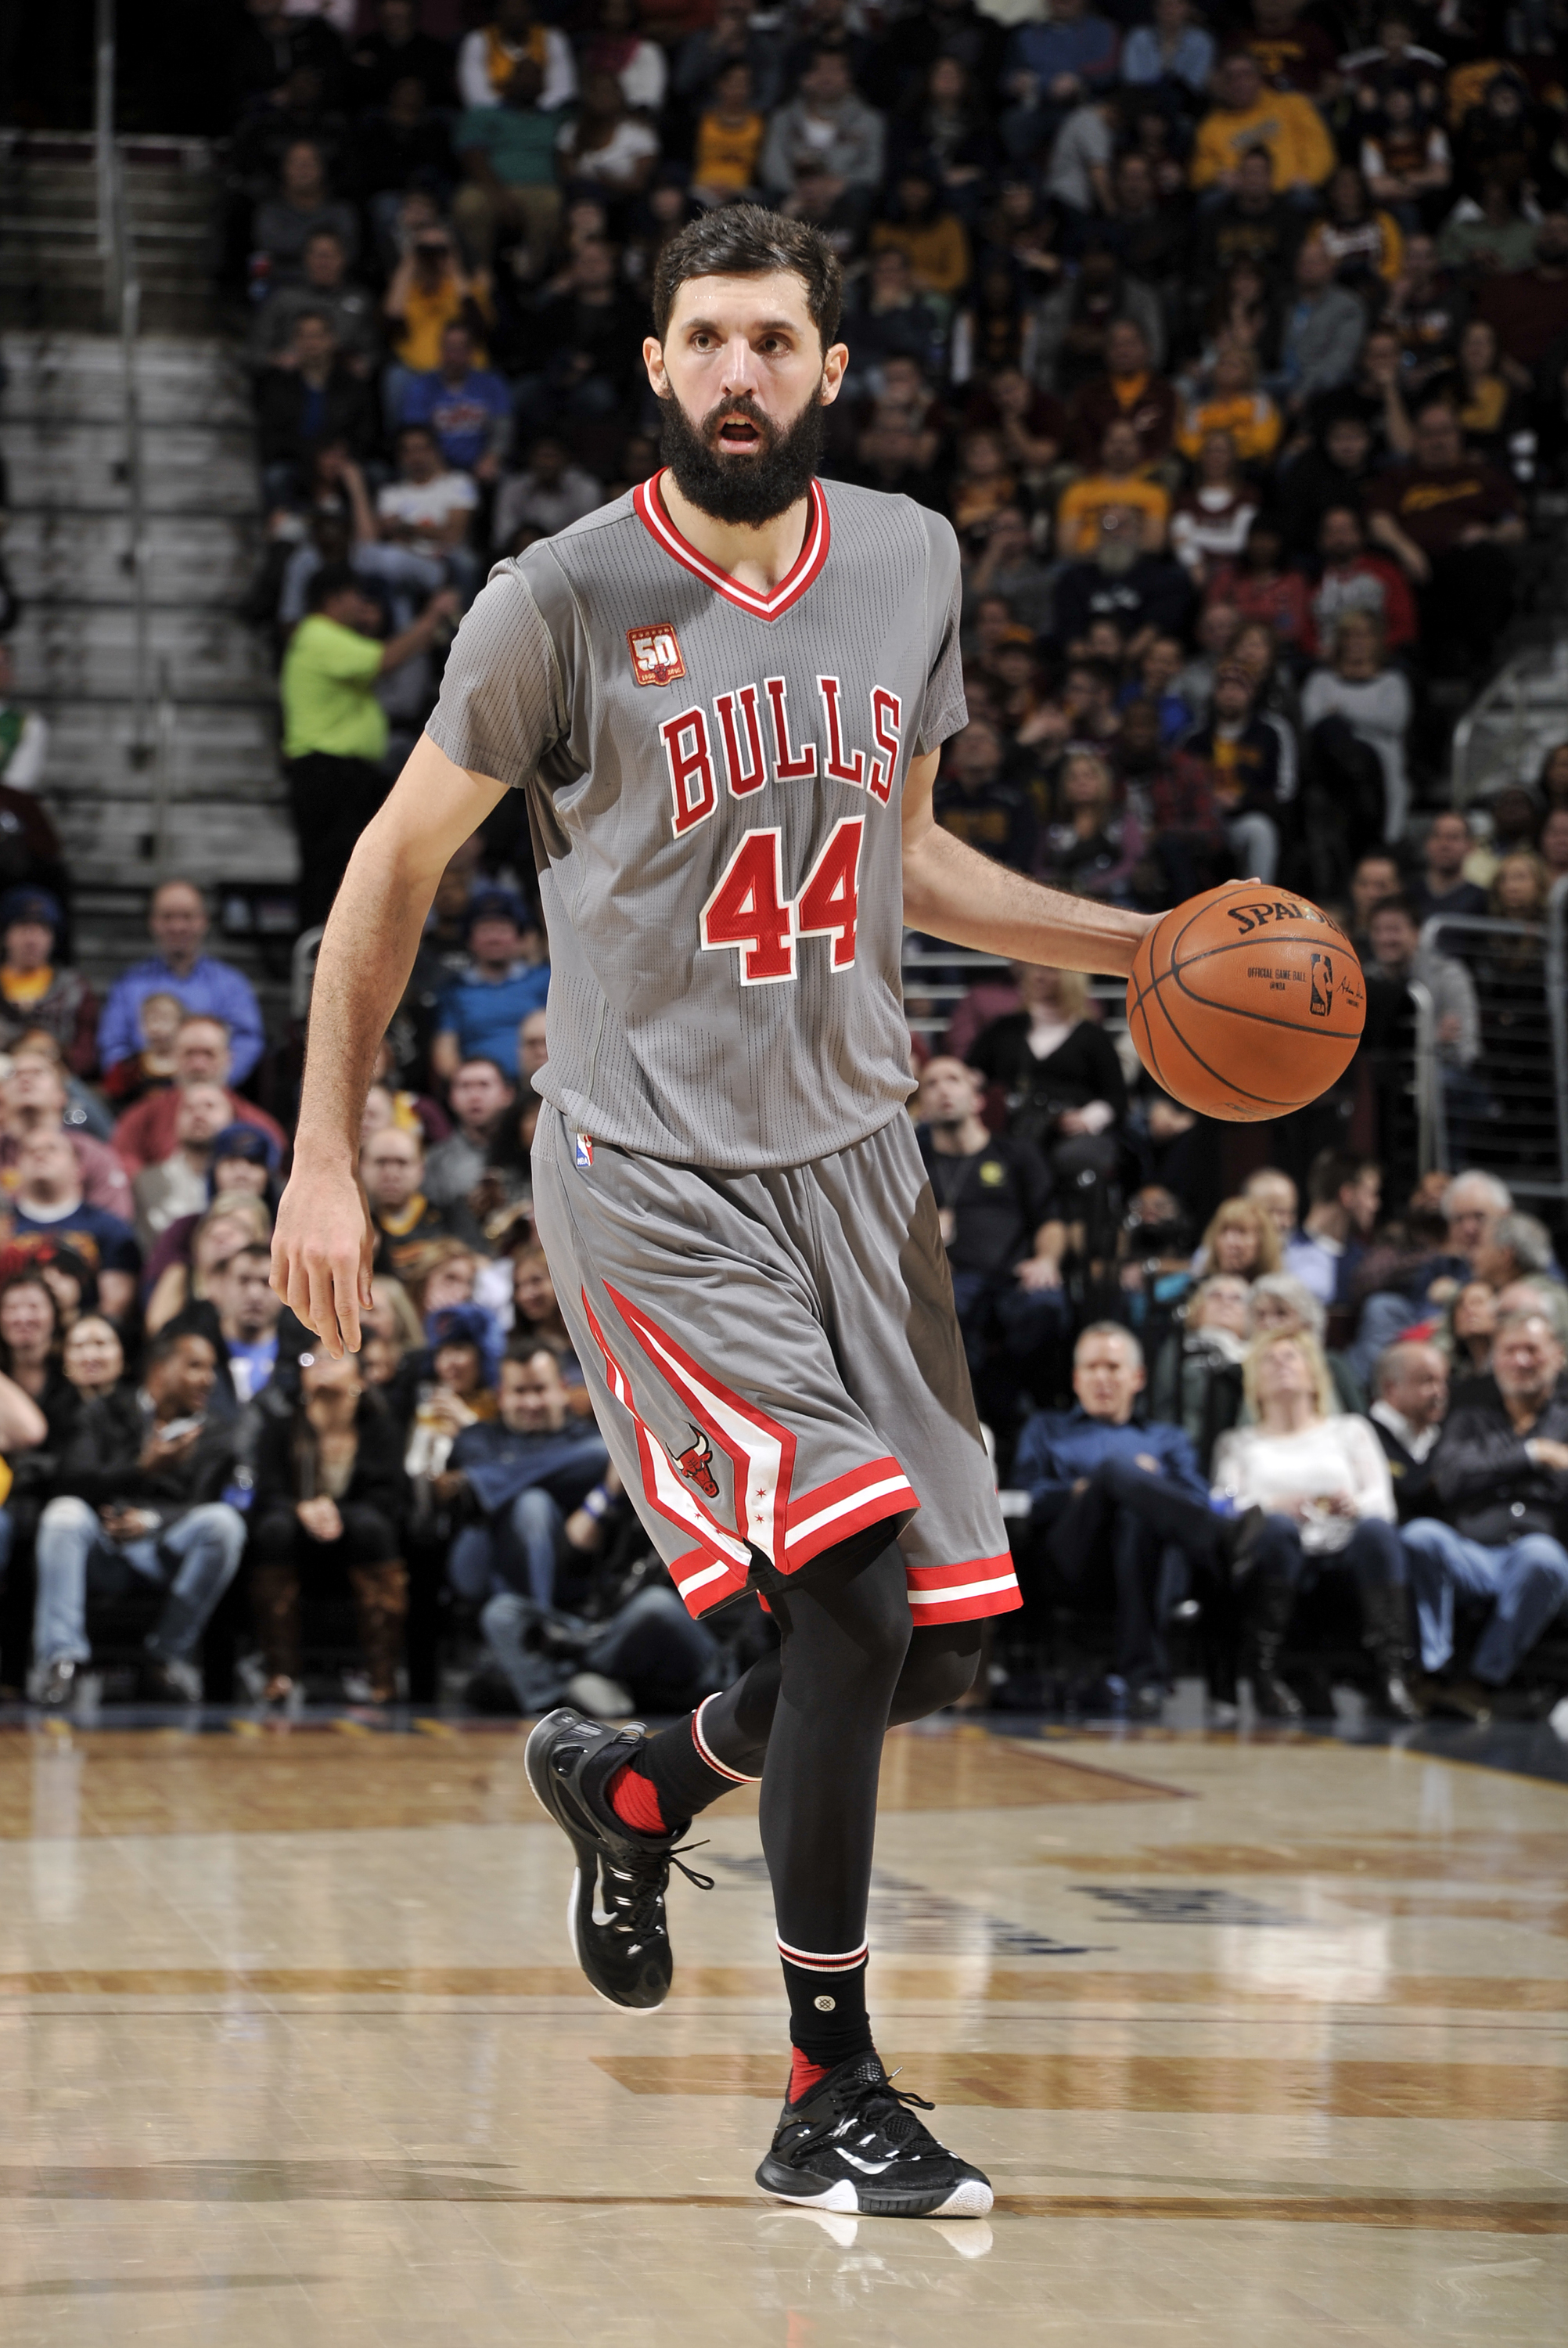 CLEVELAND, OH - JANUARY 23:  Nikola Mirotic #44 of the Chicago Bulls brings the ball up the court against the Cleveland Cavaliers during the game at The Quicken Loans Arena on January 23, 2016 in Cleveland, Ohio. (Photo by David Liam Kyle/NBAE via Getty I